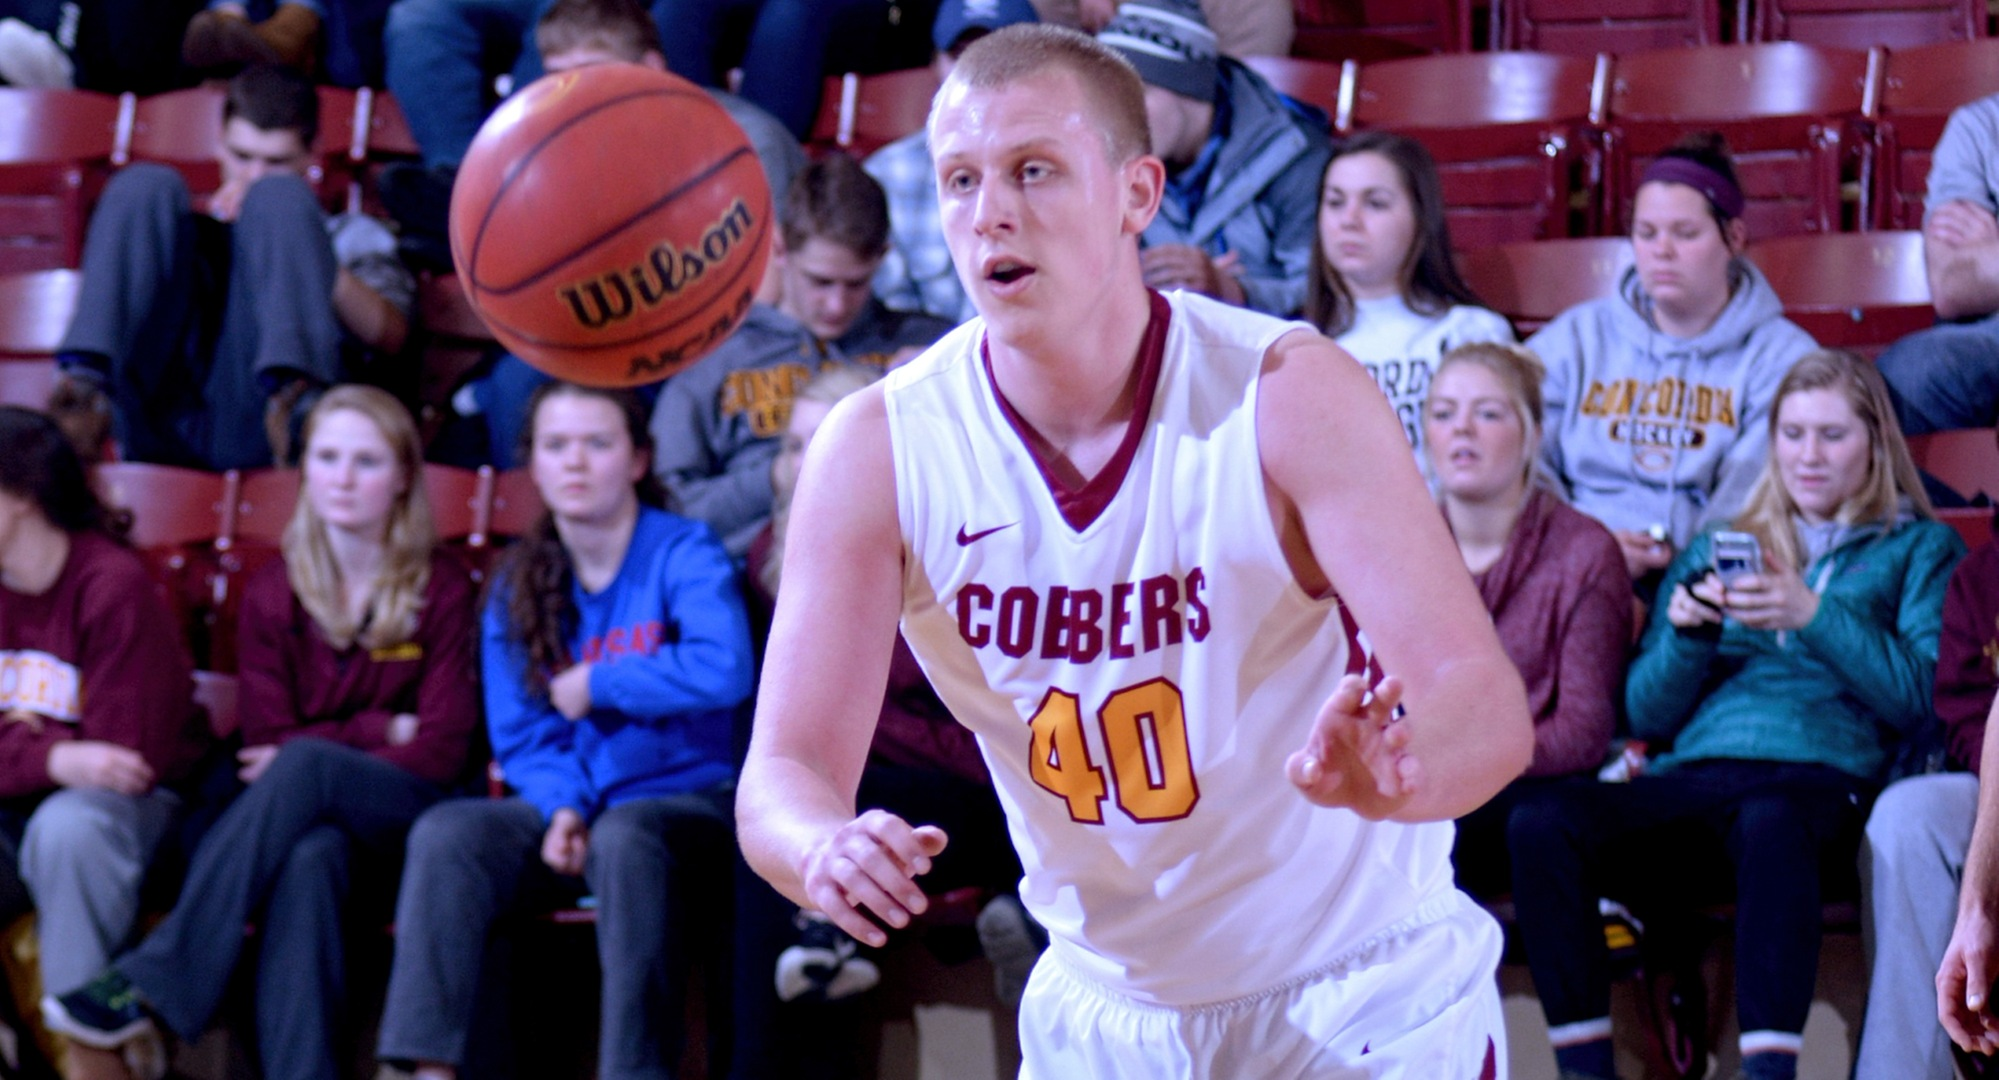 Cobber junior Austin Heins went 8-for-9 from the floor and finished with a game-high 17 points in Concordia's game at Augsburg.